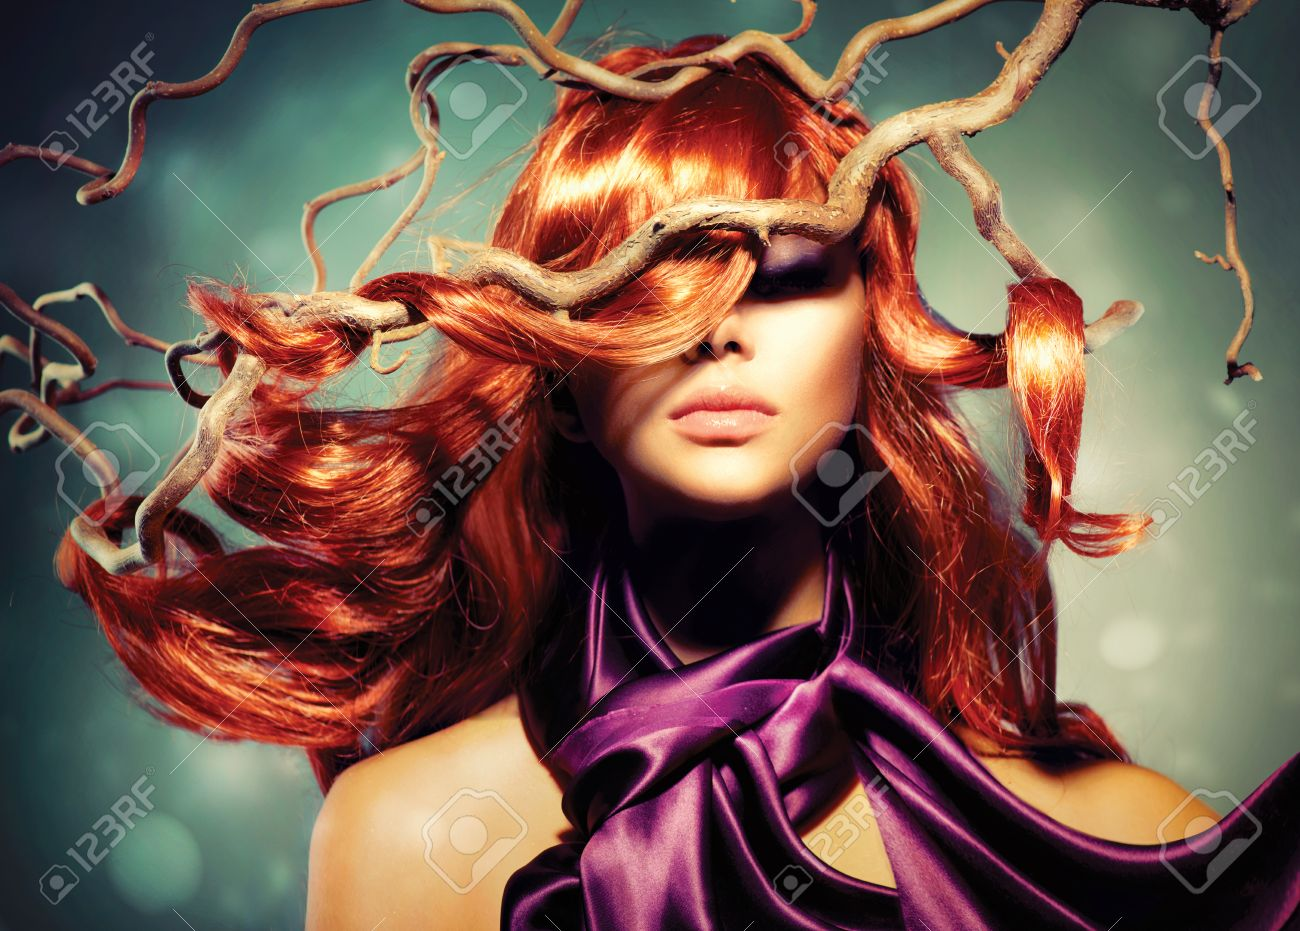 Fashion Model Woman Portrait with Long Curly Red Hair Stock Photo - 23042863